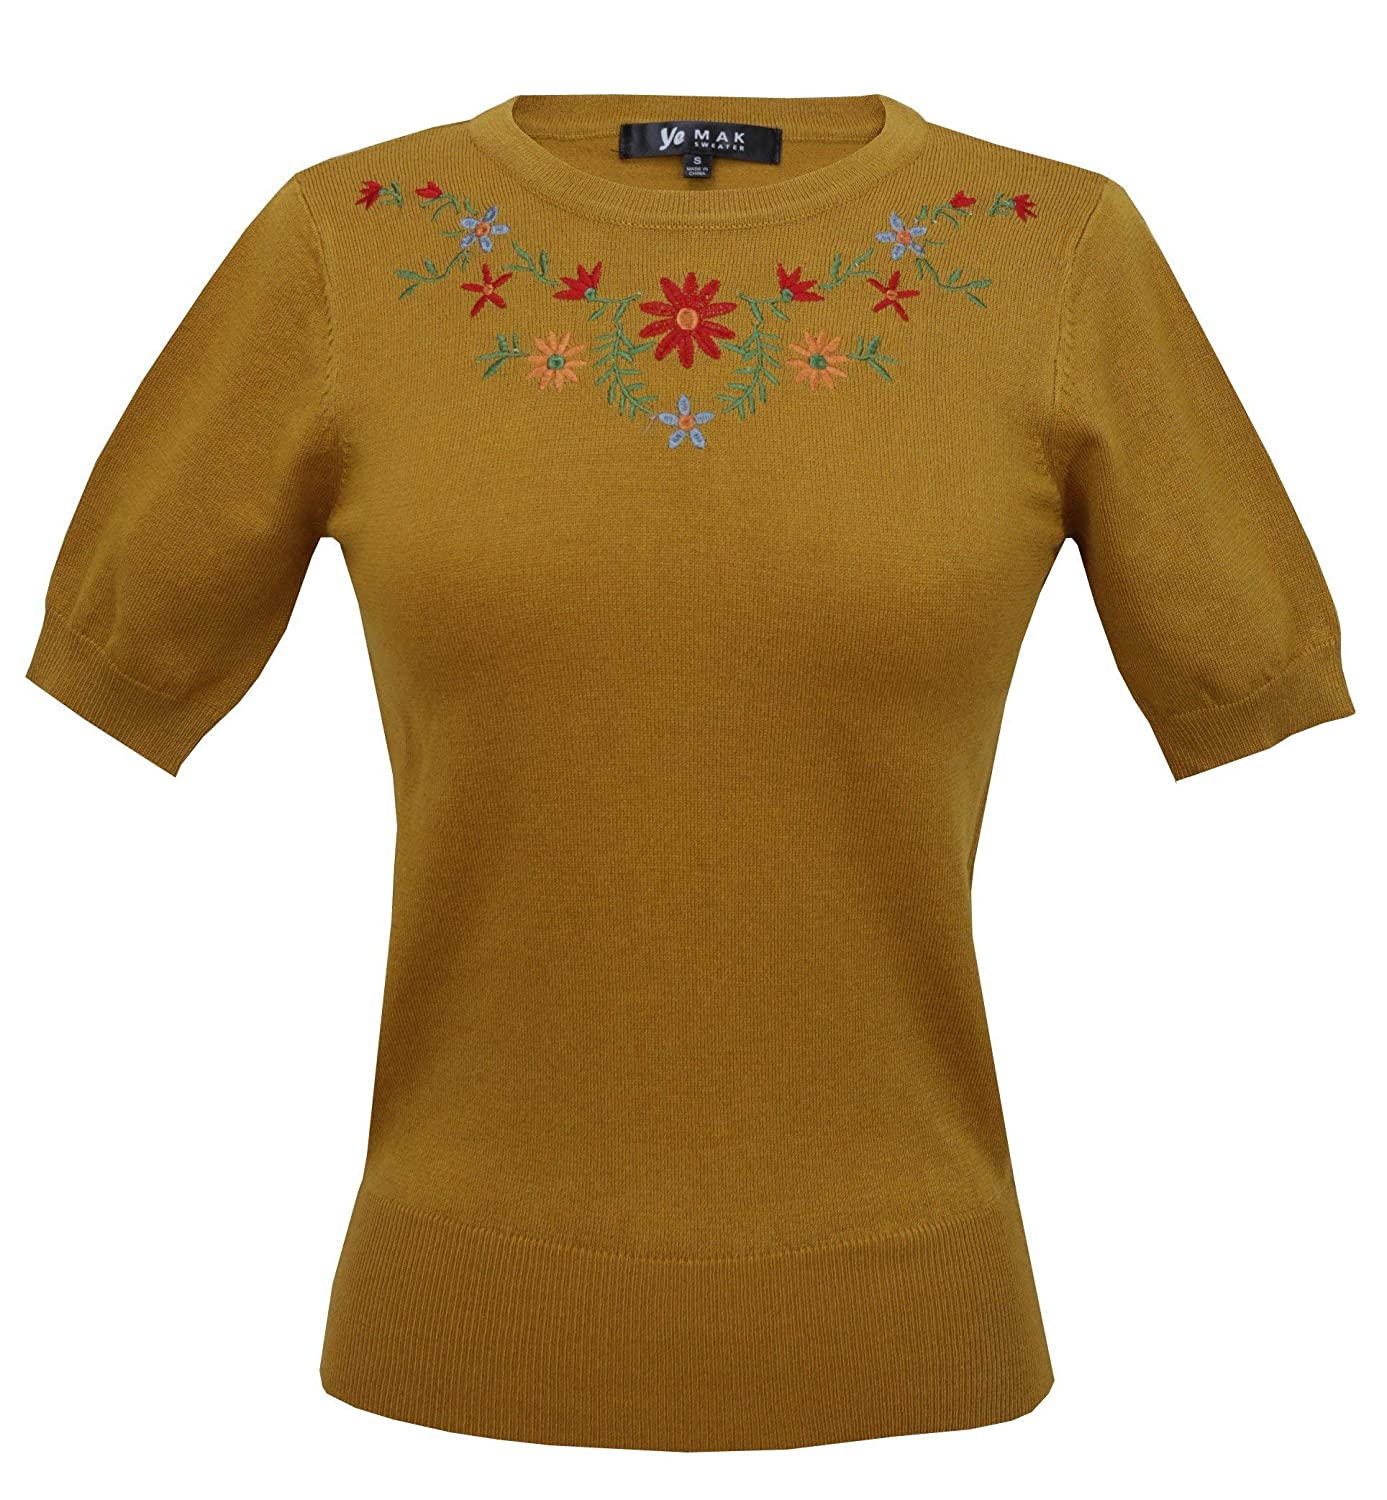 YEMAK Womens Daisy Flower Embroidered Crewneck Casual Knit Pullover Sweater